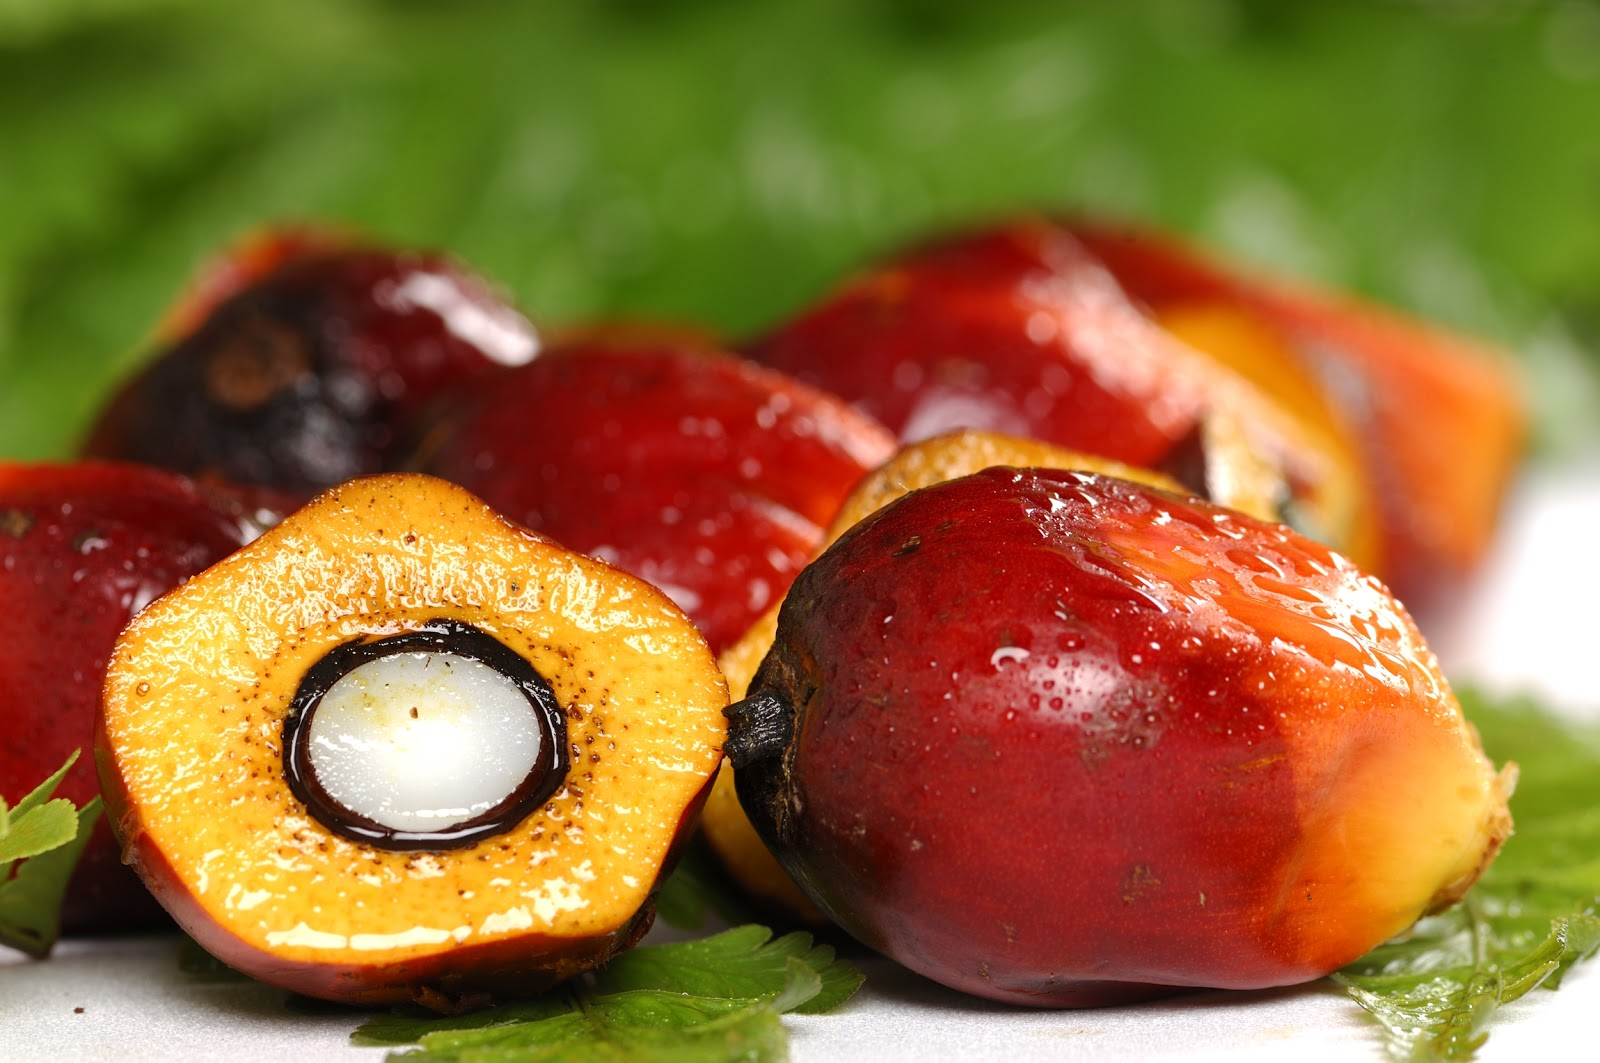 Rabobank reaffirms palm oil commitment